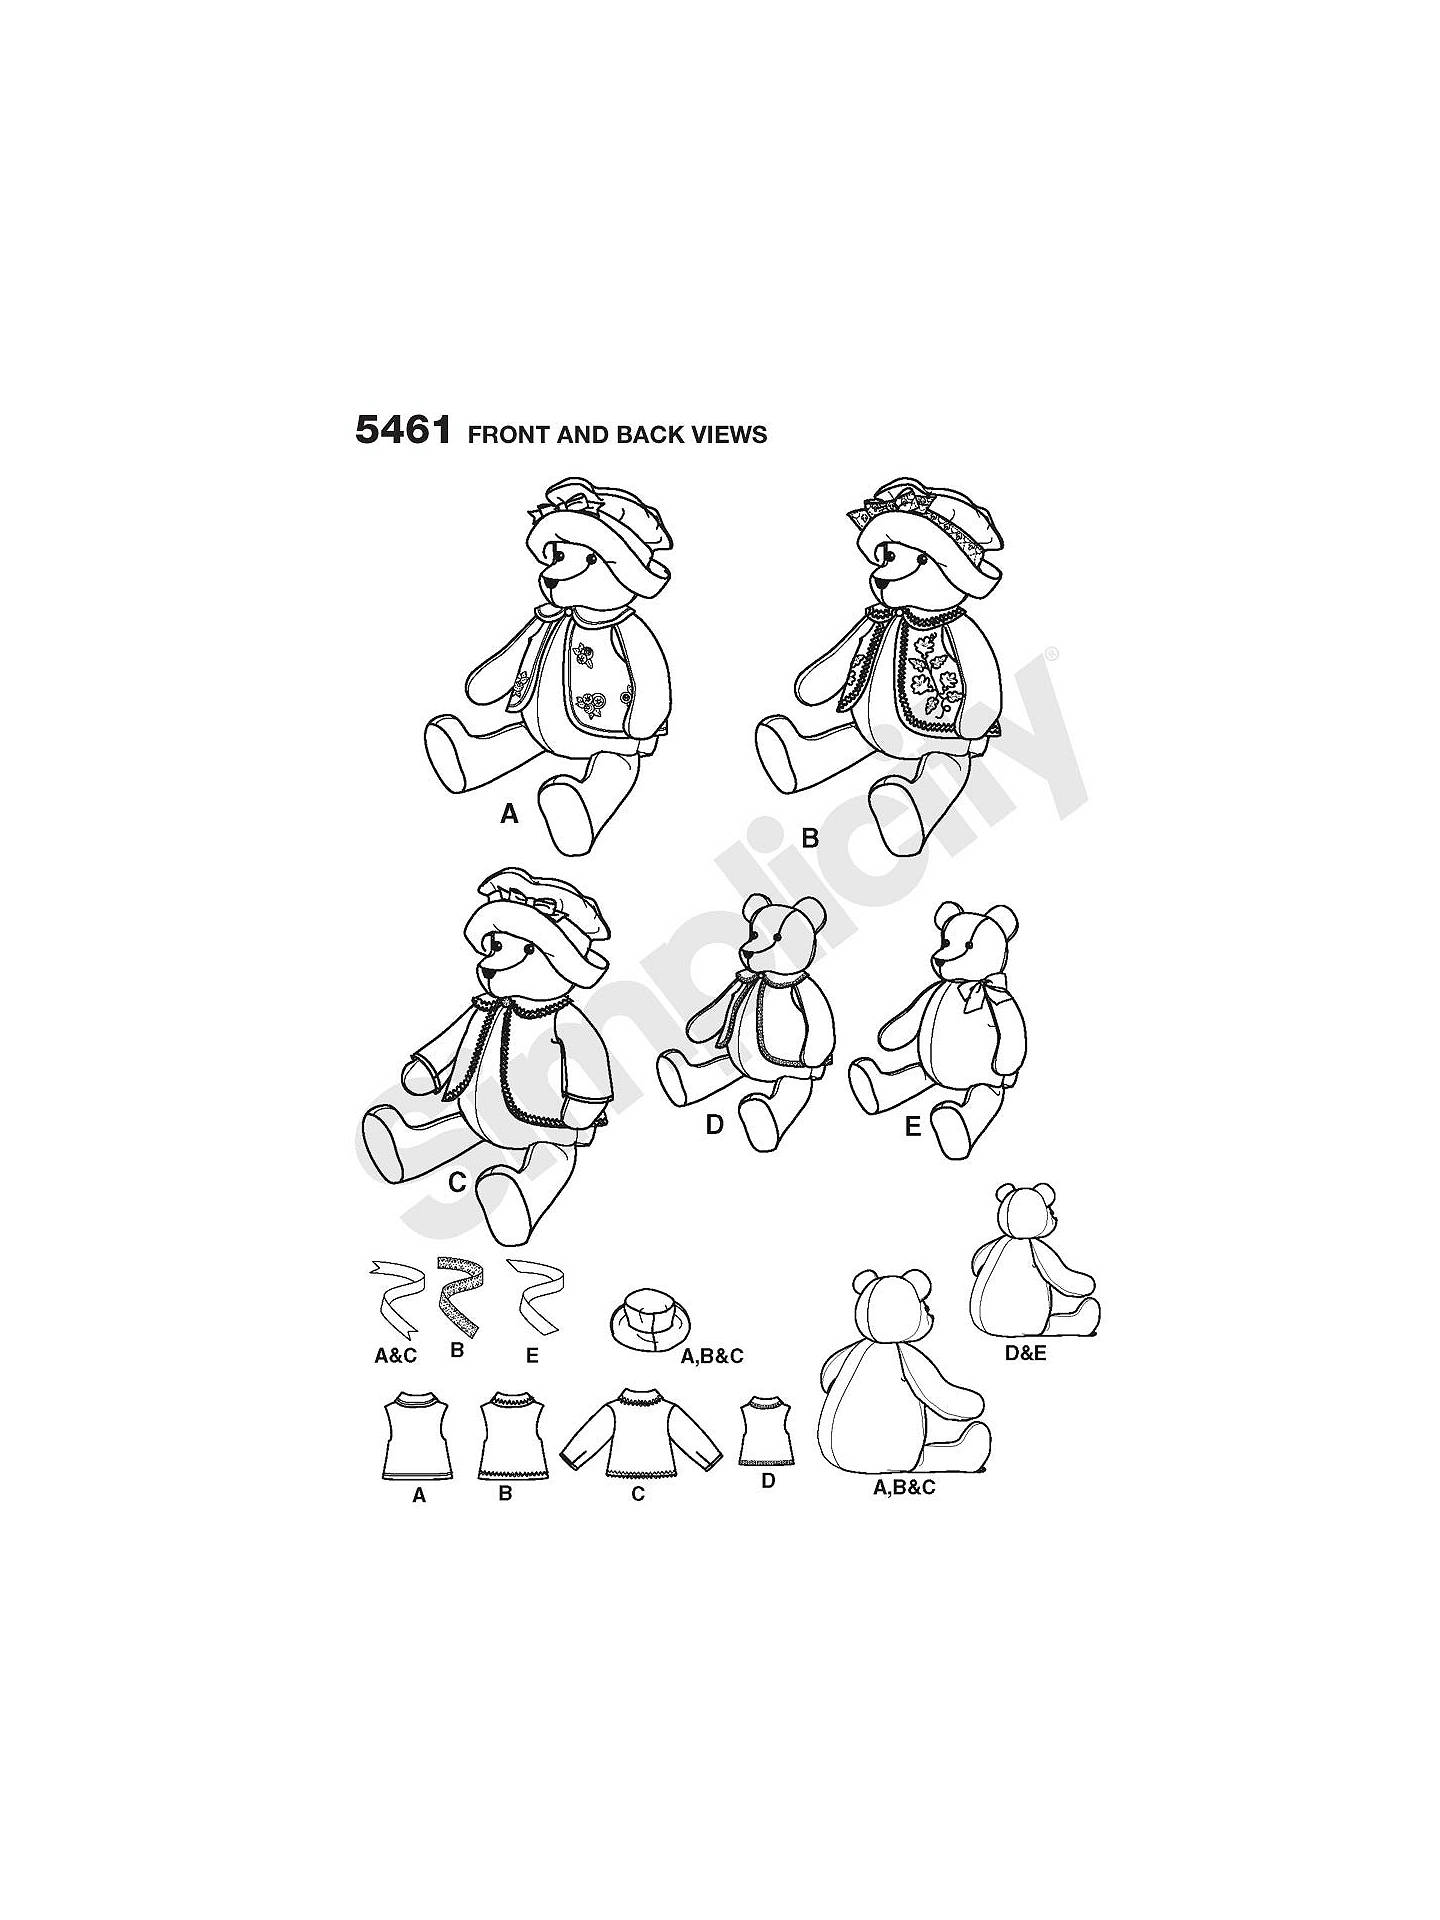 Classic 18 and 22 Inch Stuffed Bears with Clothes Simplicity 5461 Sewing Pattern